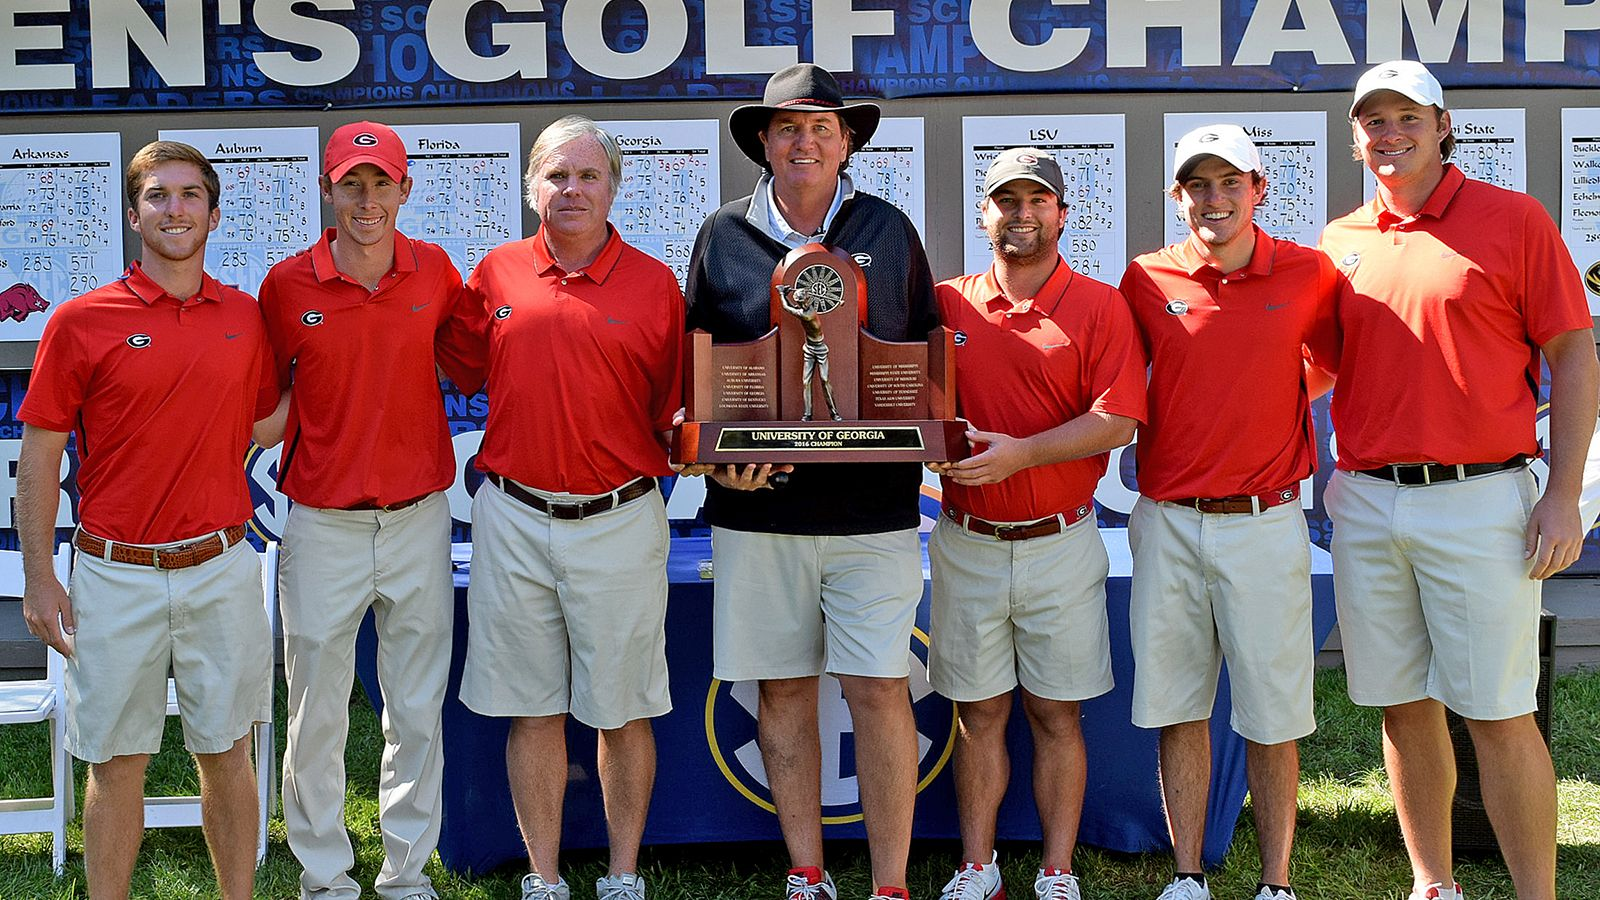 McCoy-led Bulldogs win SEC Men's Golf Championship